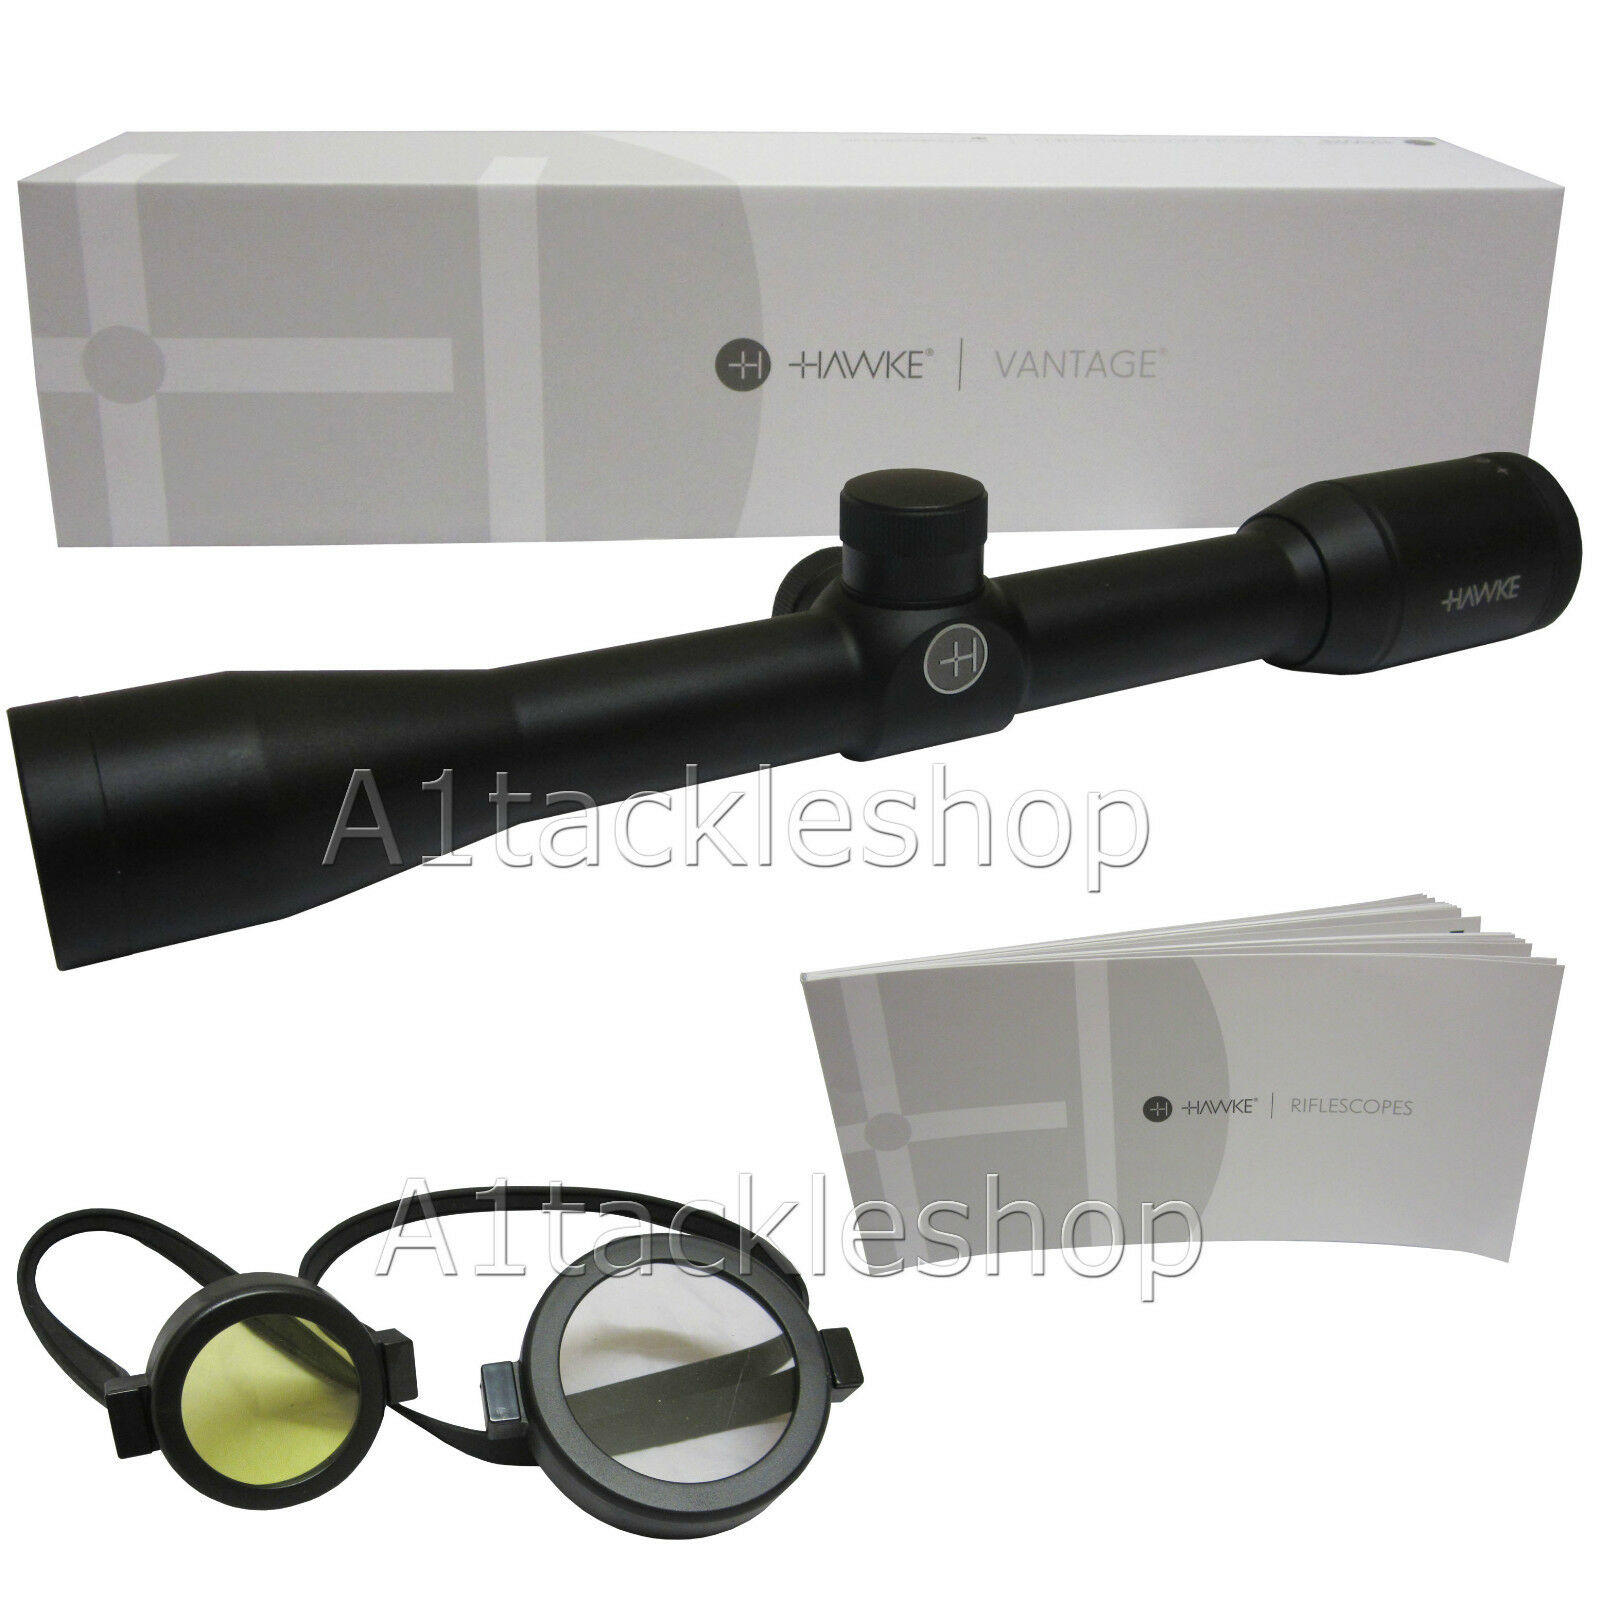 Hawke Vantage Telescopic Rifle Scope Sight